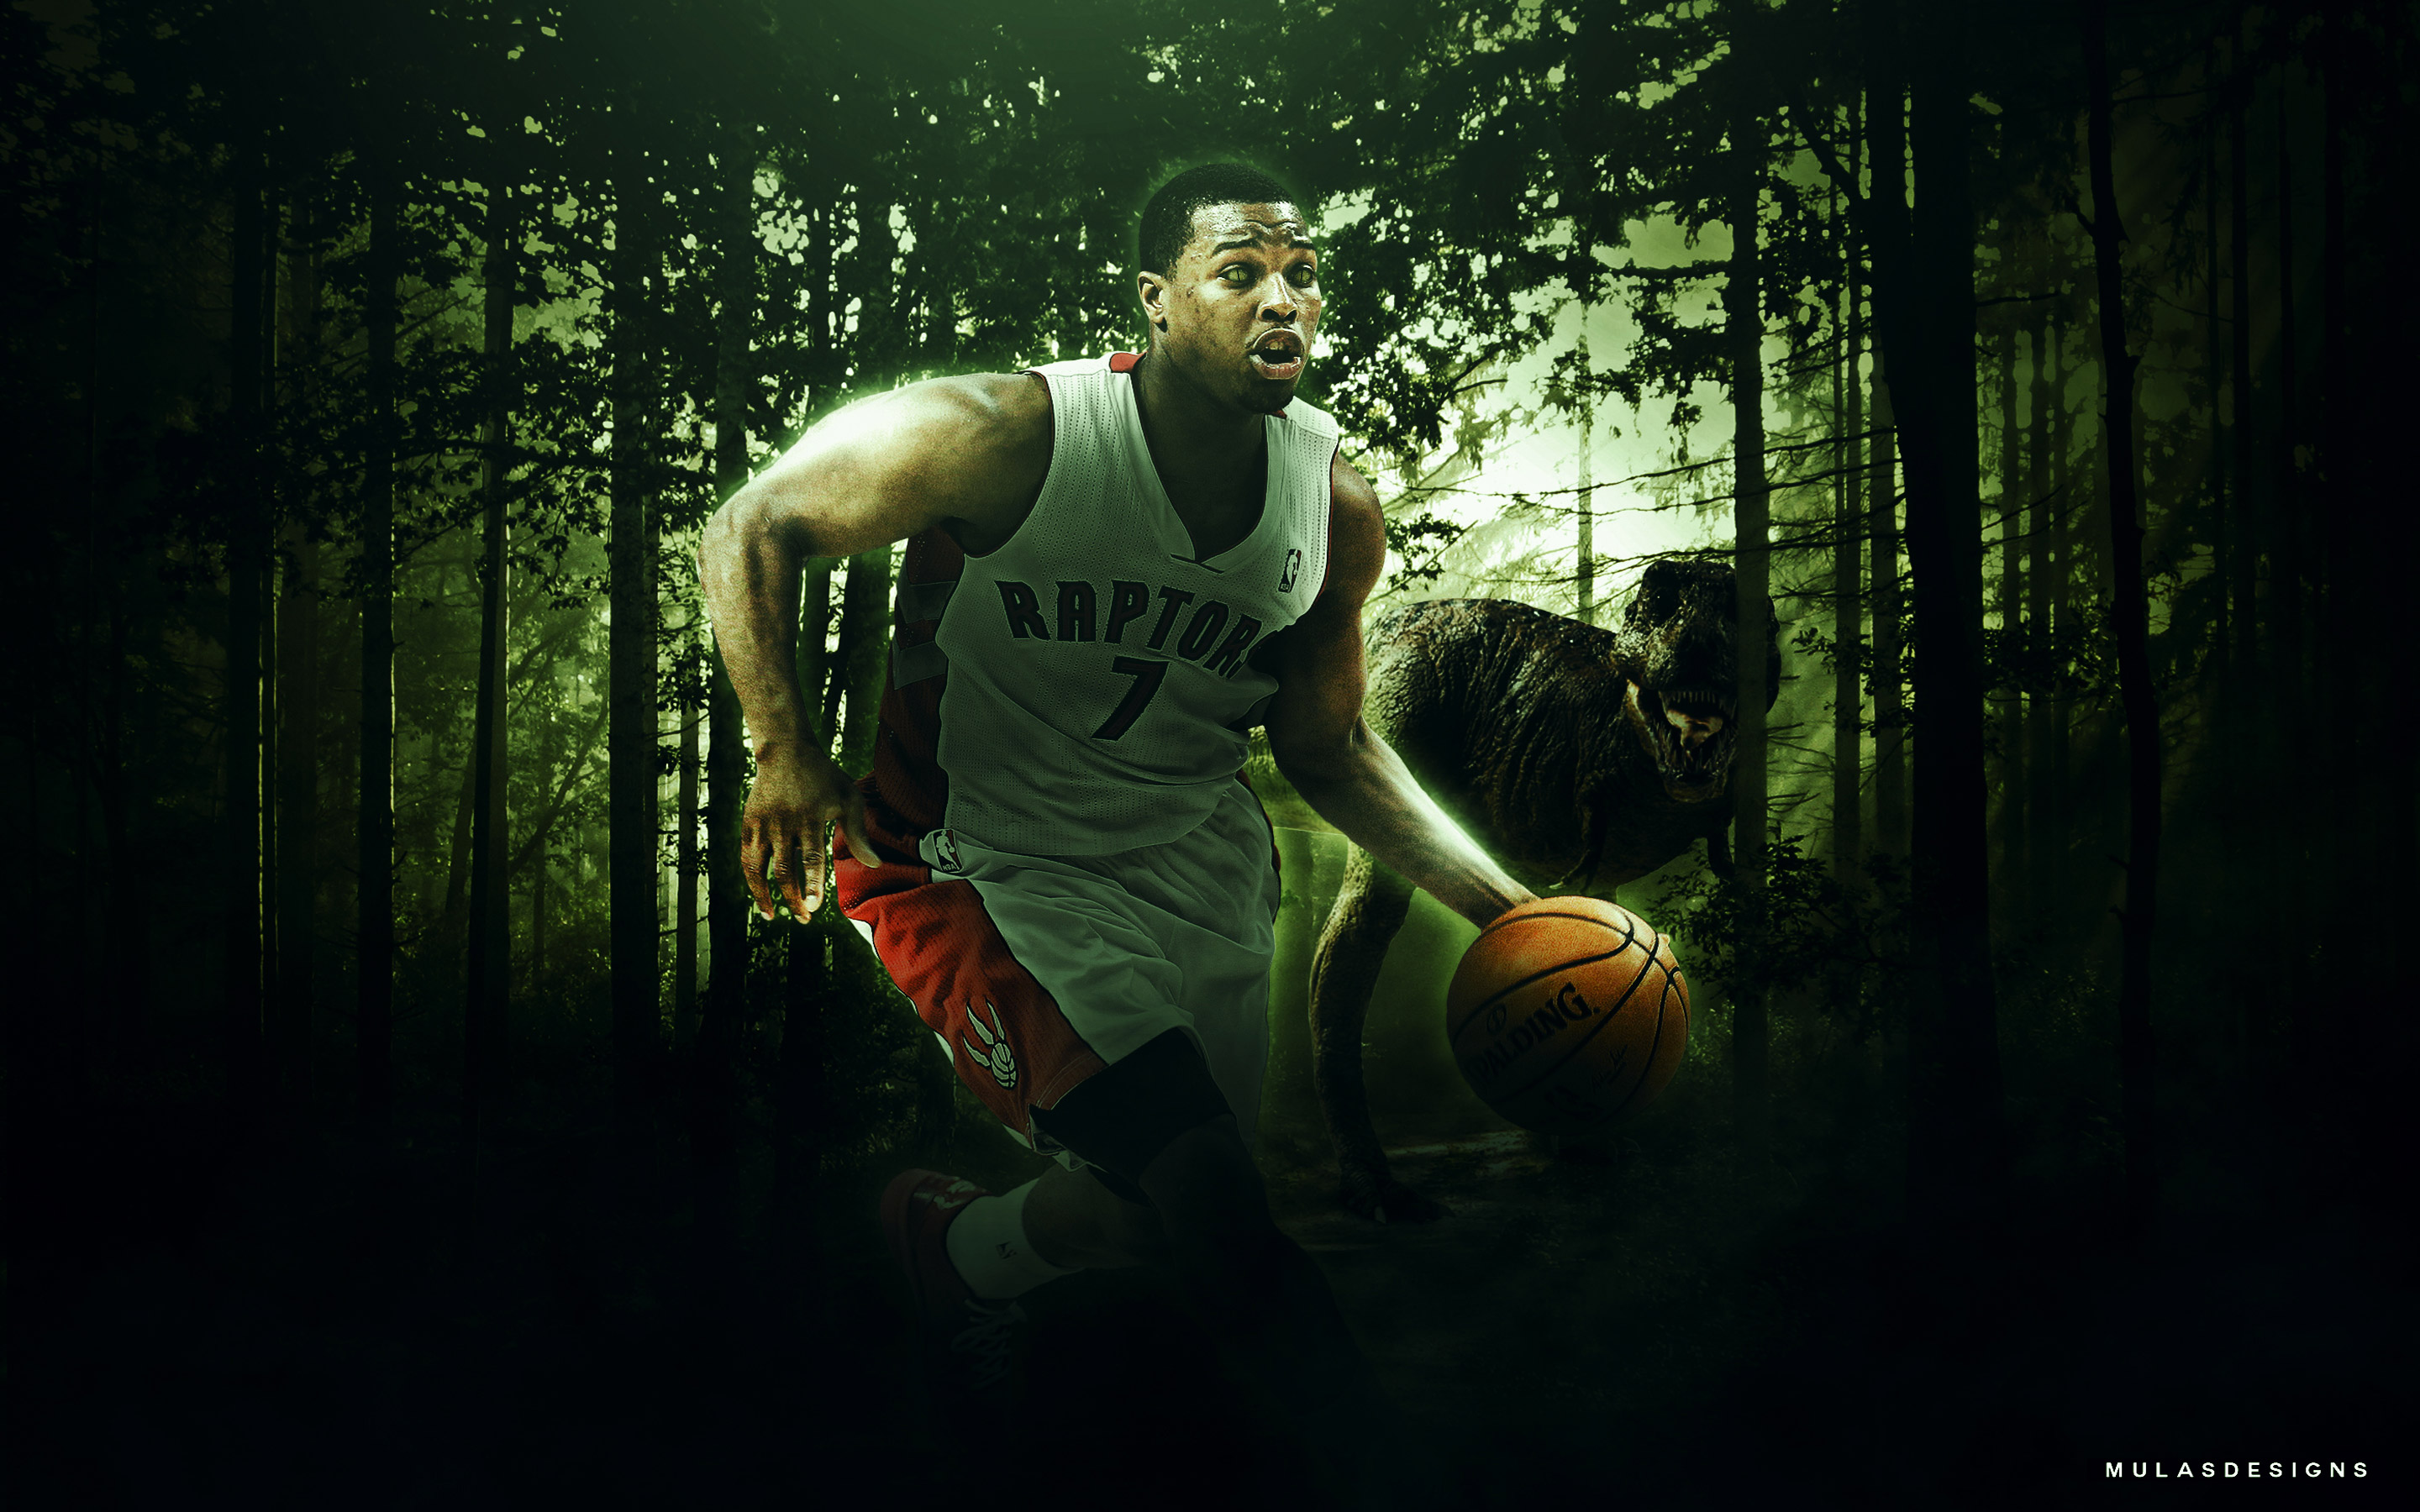 Kyle Lowry Raptors 2015 2880x1800 Wallpaper